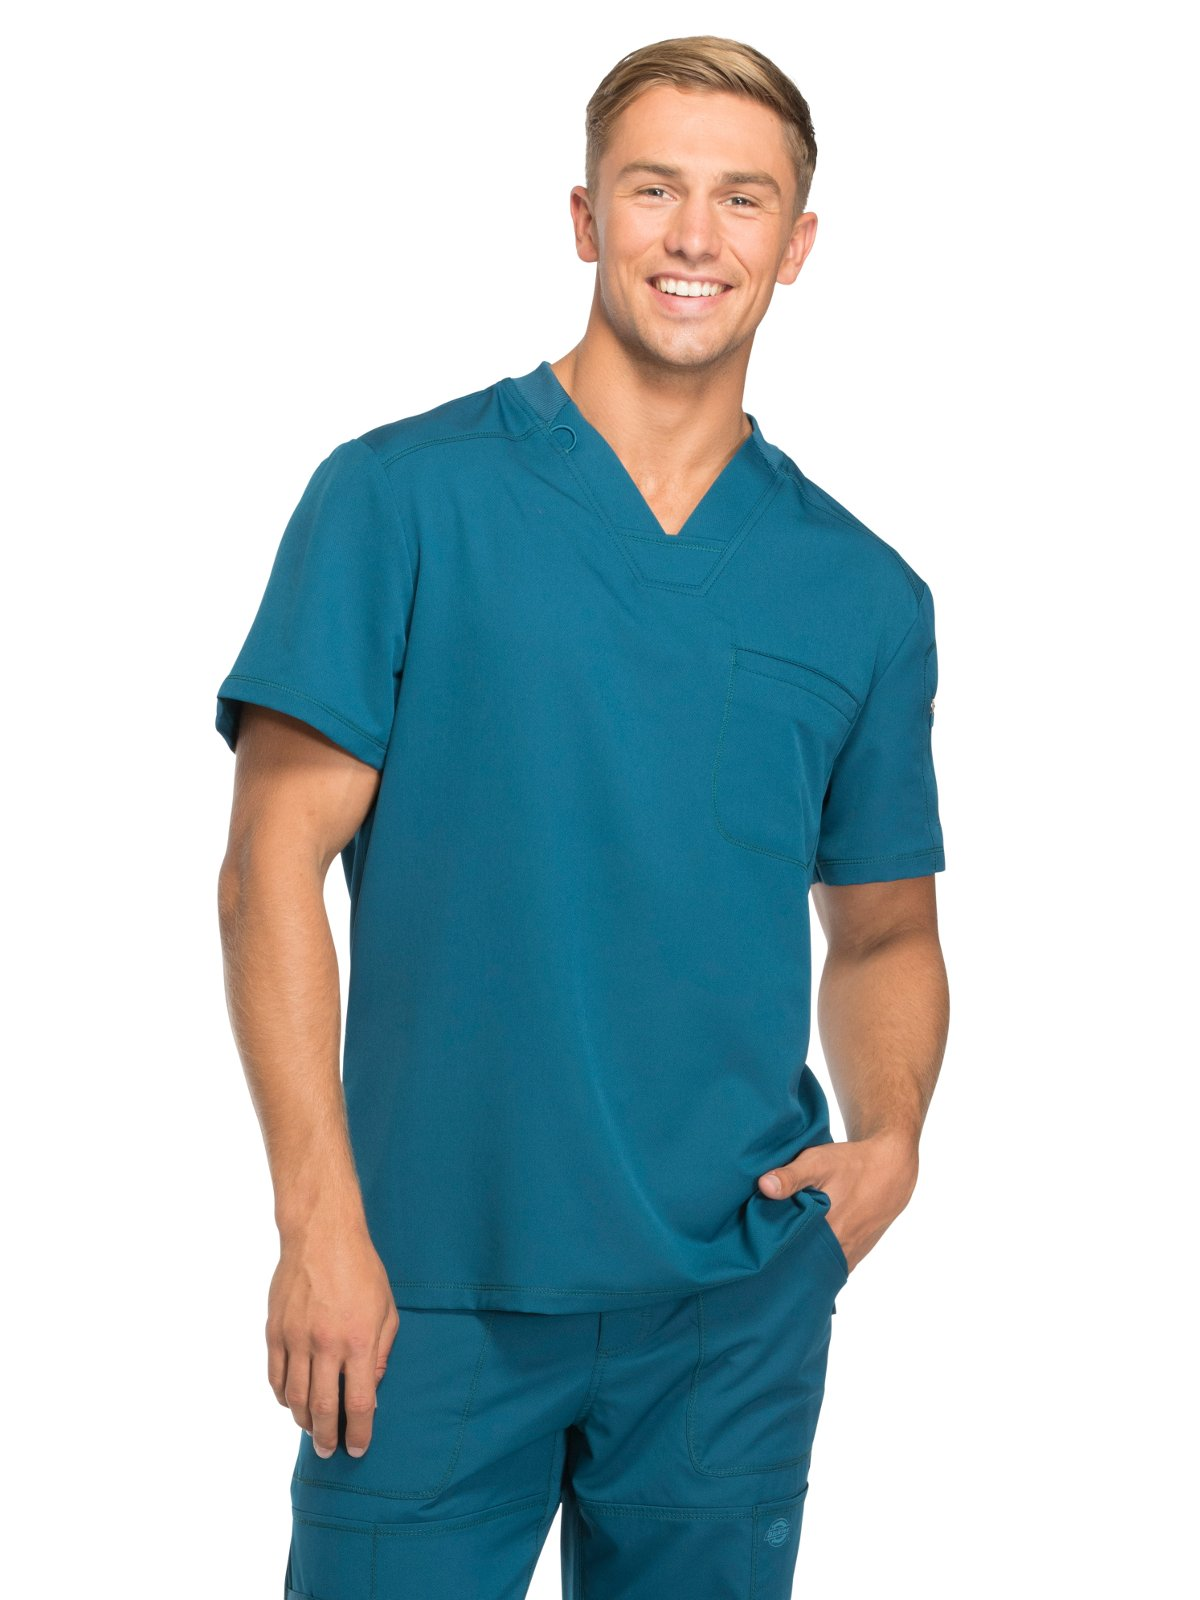 Dickies Dynamix by Men's V-Neck Solid Scrub Top Large Caribbean Blue